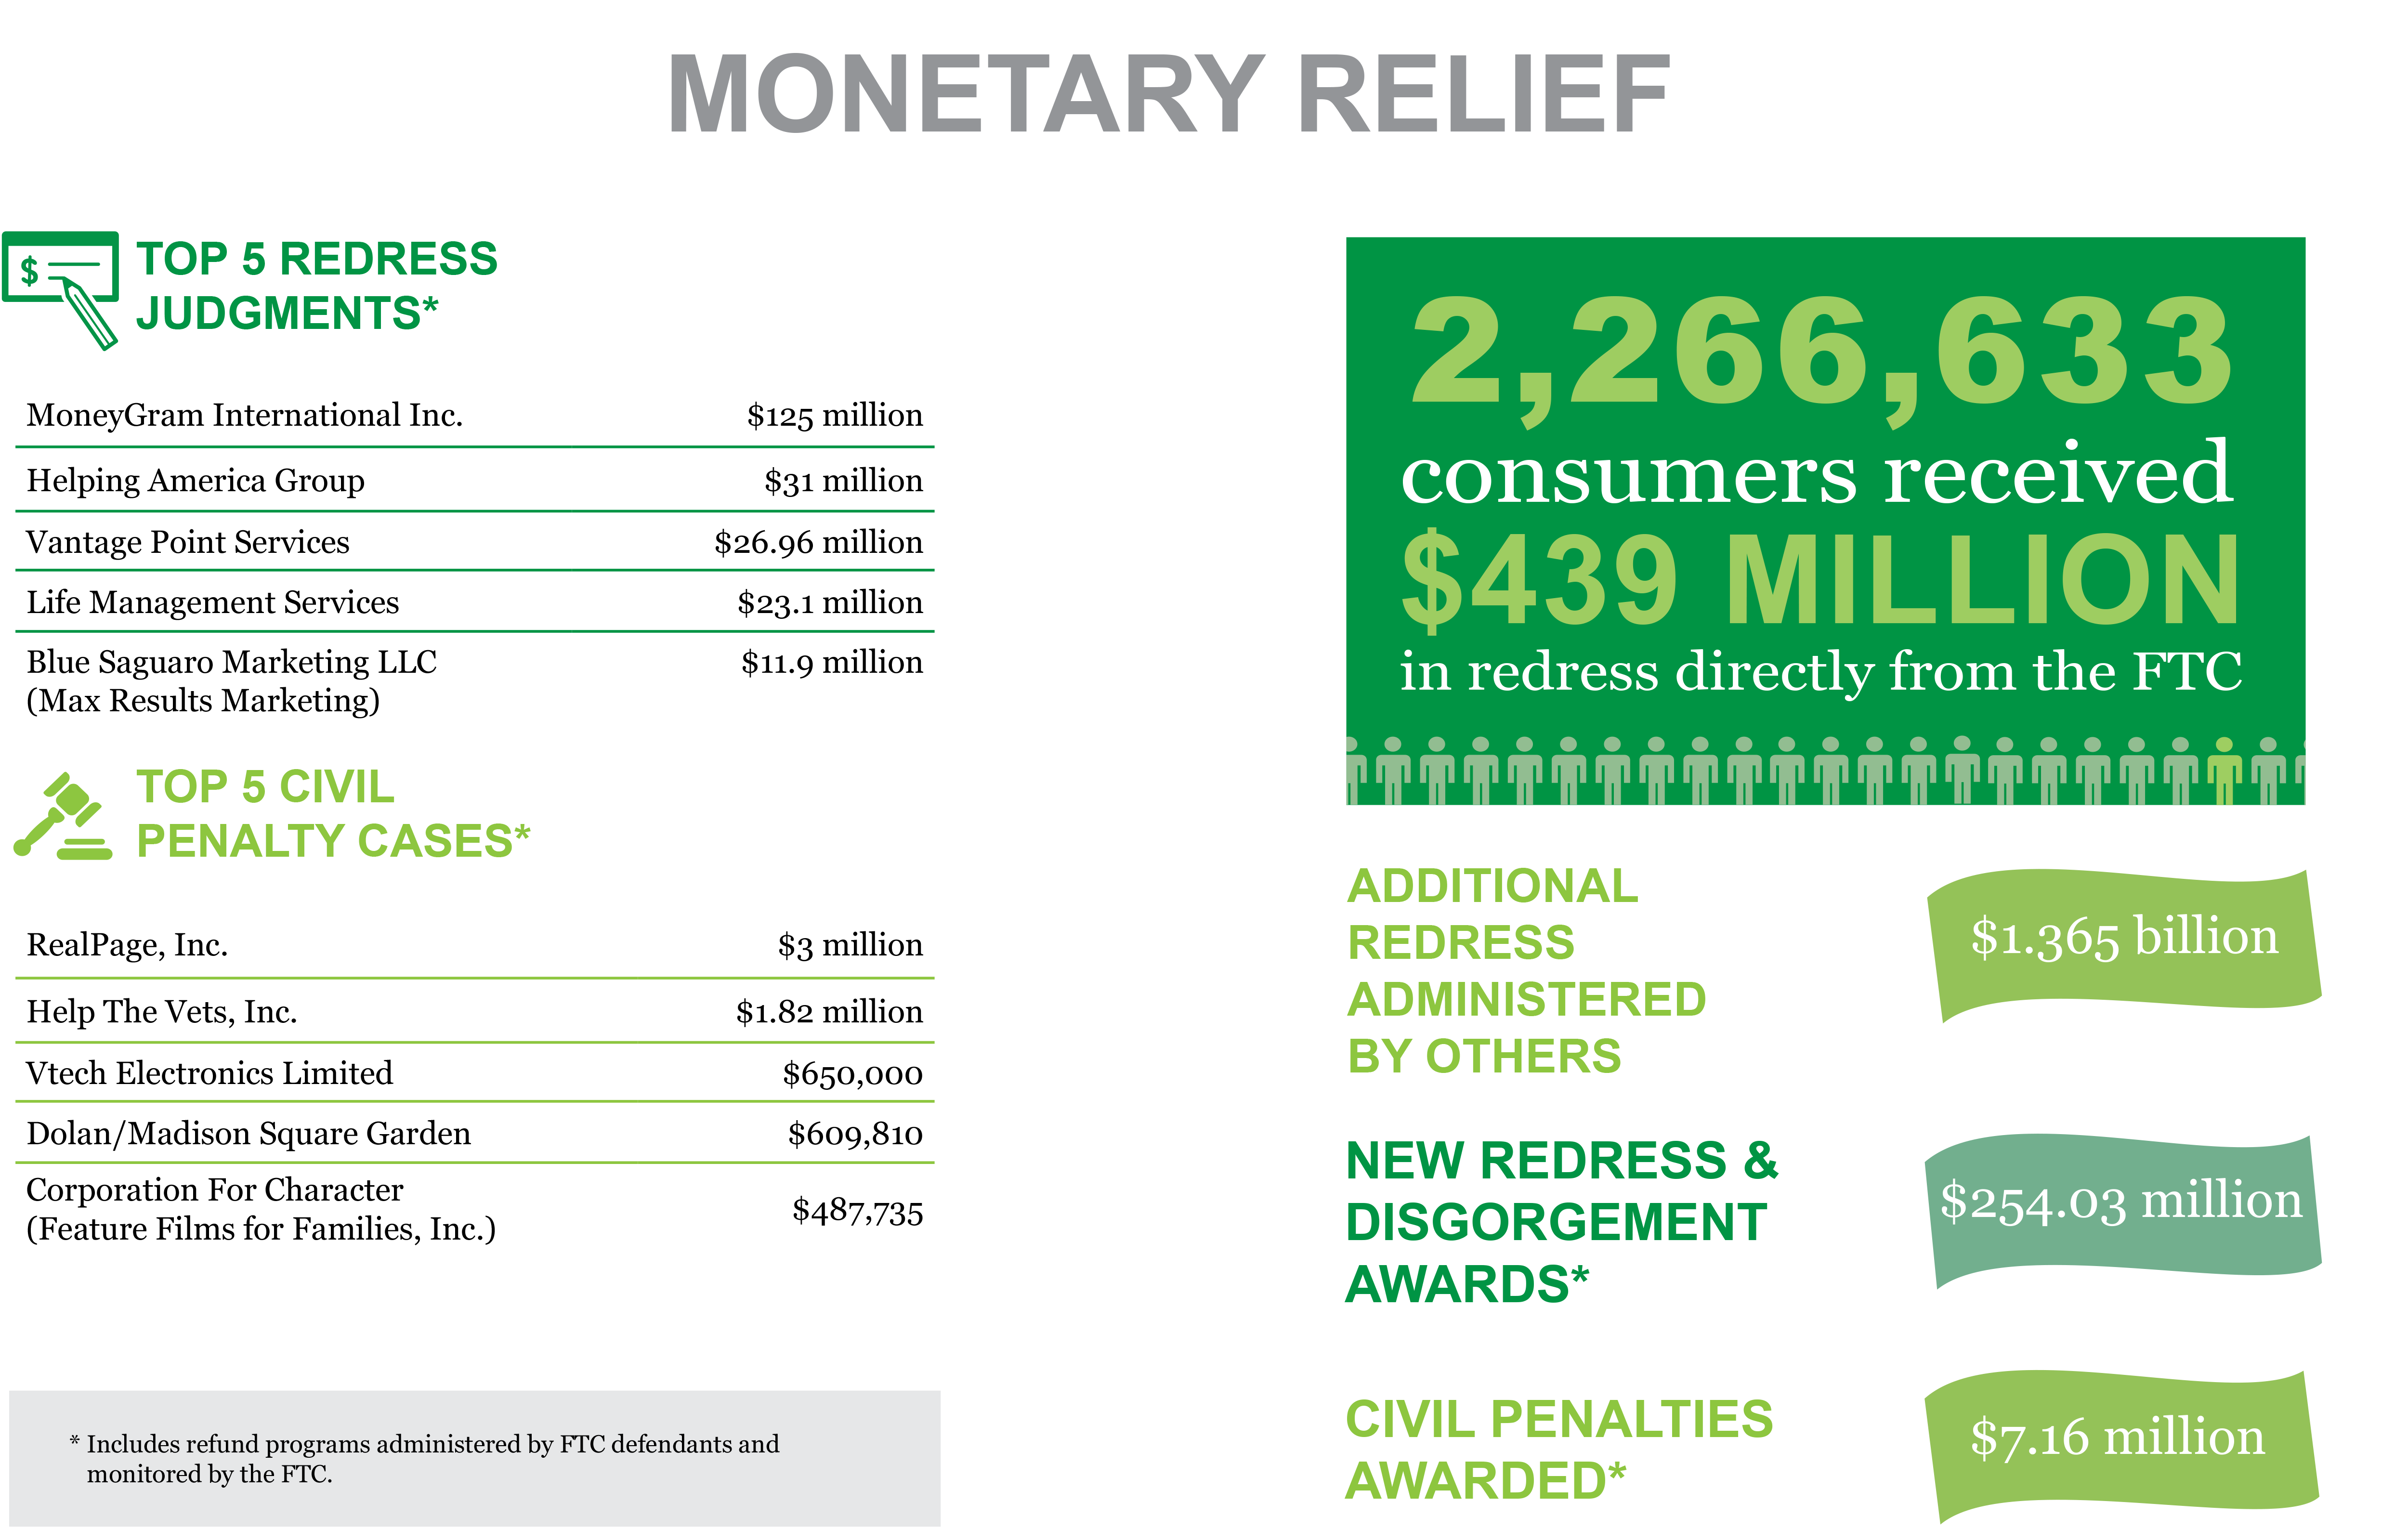 Stats & Data 2018 Monetary Relief infographic